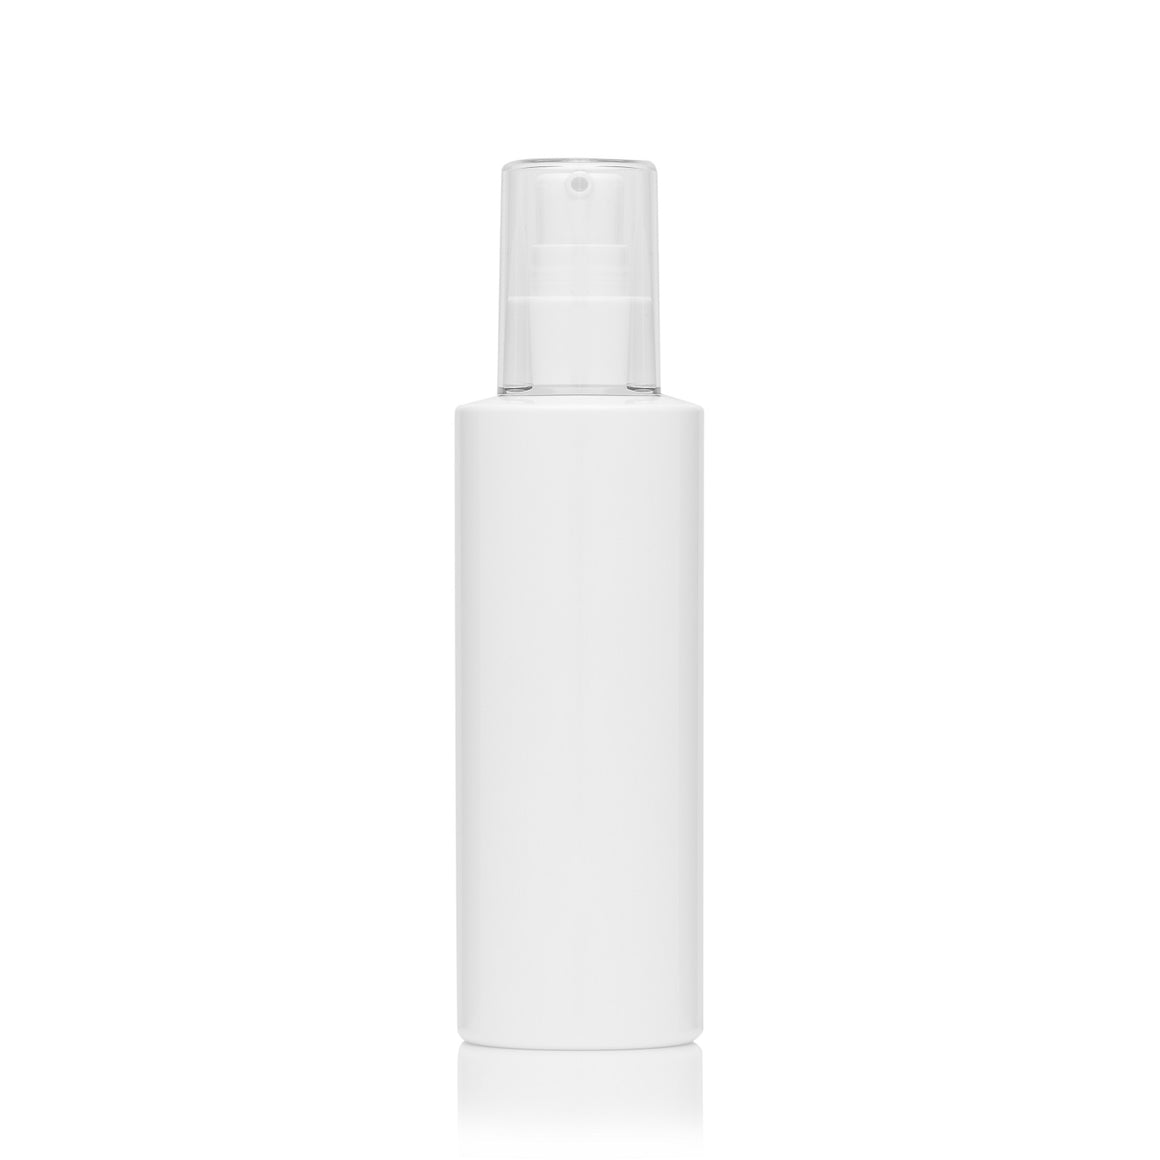 Native Milk Cleanser - 200ml Pure